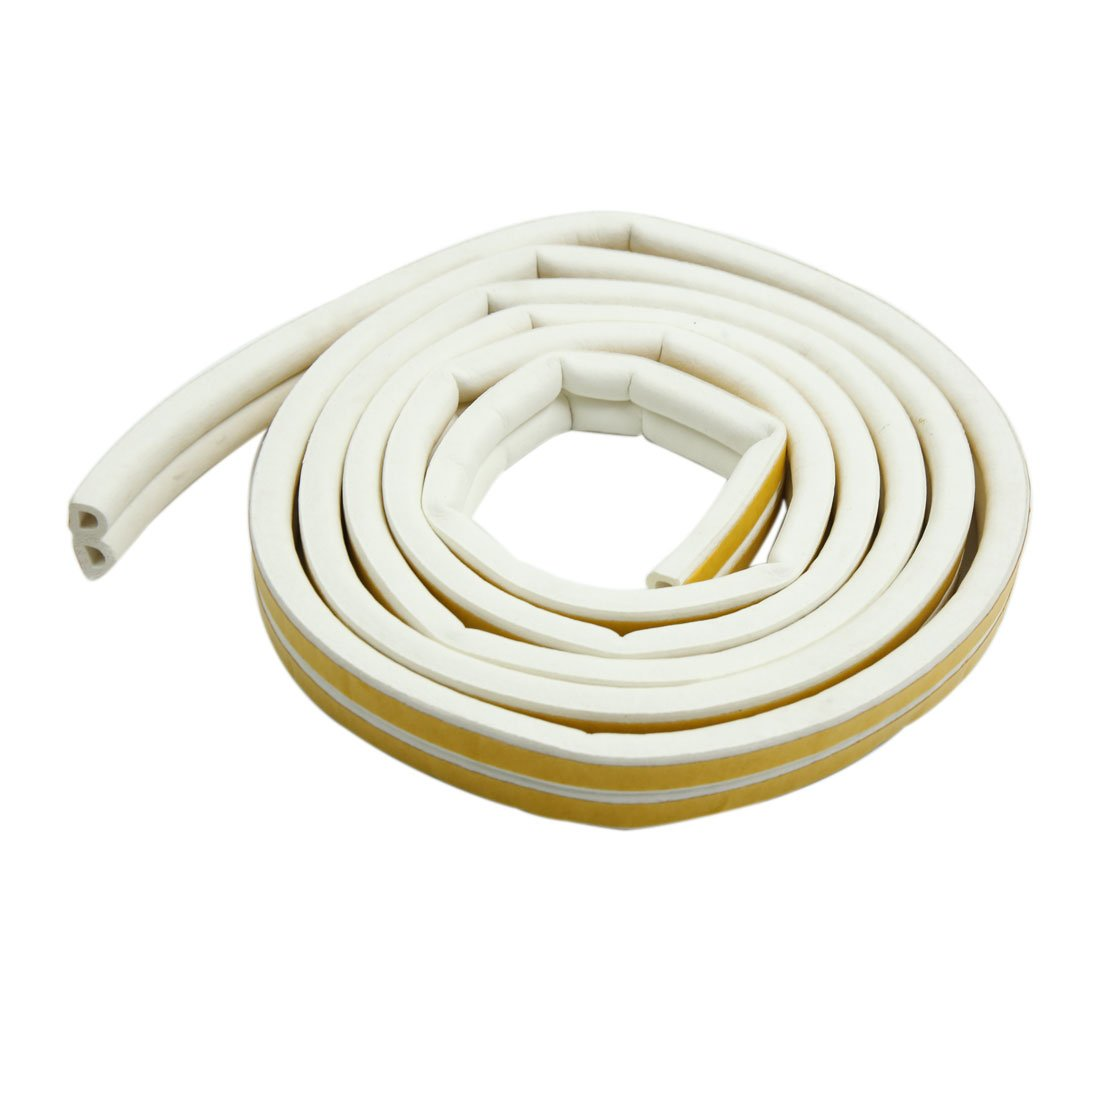 uxcell Self Adhesive 2m D-shape Car Door Window Trim Weatherstrip Seal Strip for VW